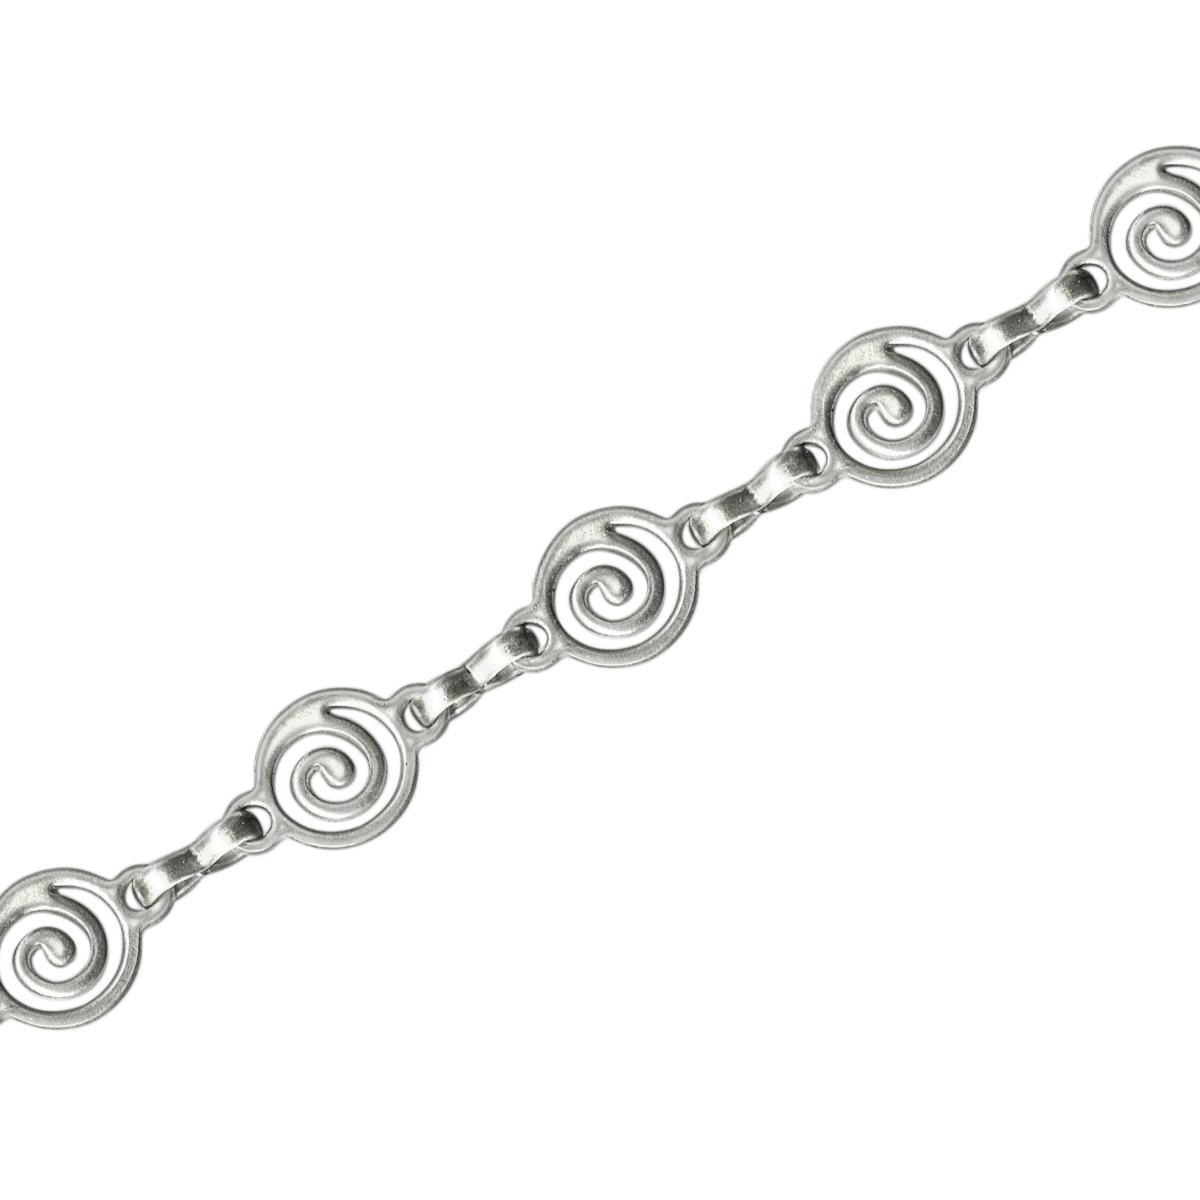 White Plated Spiral Link Chain Spool, Footage